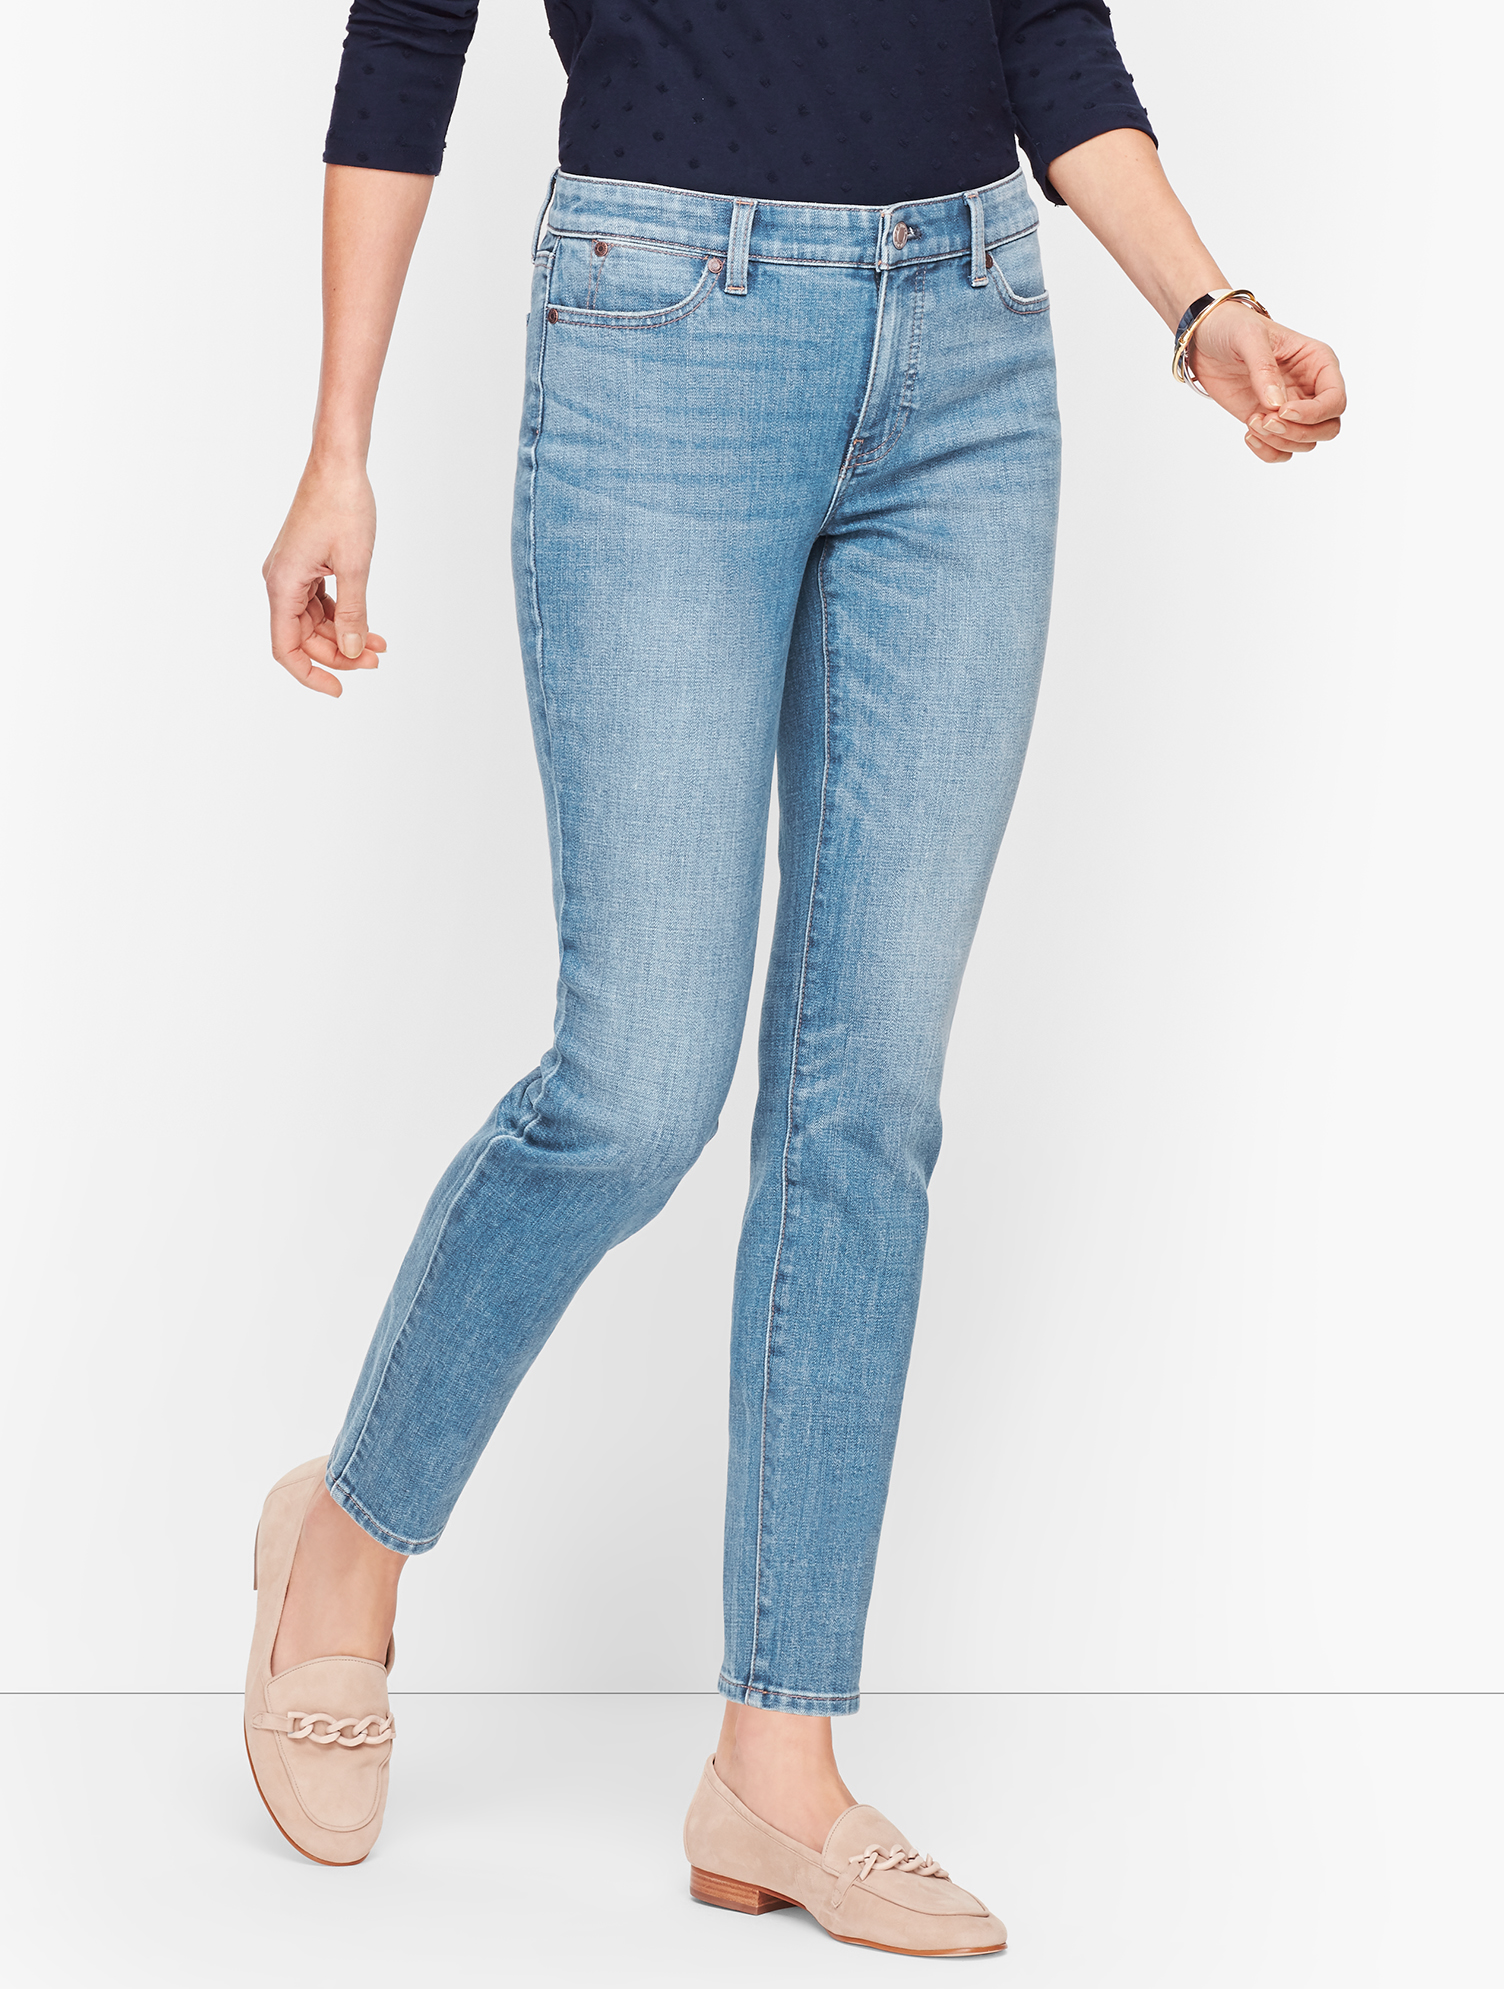 Our classic ankle-length jeans, featuring Flawless Five Pocket styling with our invisible slimming panel. Also offered in Slim Ankle Jeans - Curvy Fit - Wythe Wash. Features Slim leg Hits: At Waist Ankle length Closure: Fly front with button Pockets: Five Pocket Imported Fit: Inseam: Misses: 29 inches; Misses Long: 31 inches Petite: 26 1/2 inches inches Material: 70% Cotton, 29% Polyester, 1% Spandex Care: Machine Wash; Tumble Dry Slim Ankle Jeans - Wythe Wash - 16 Talbots